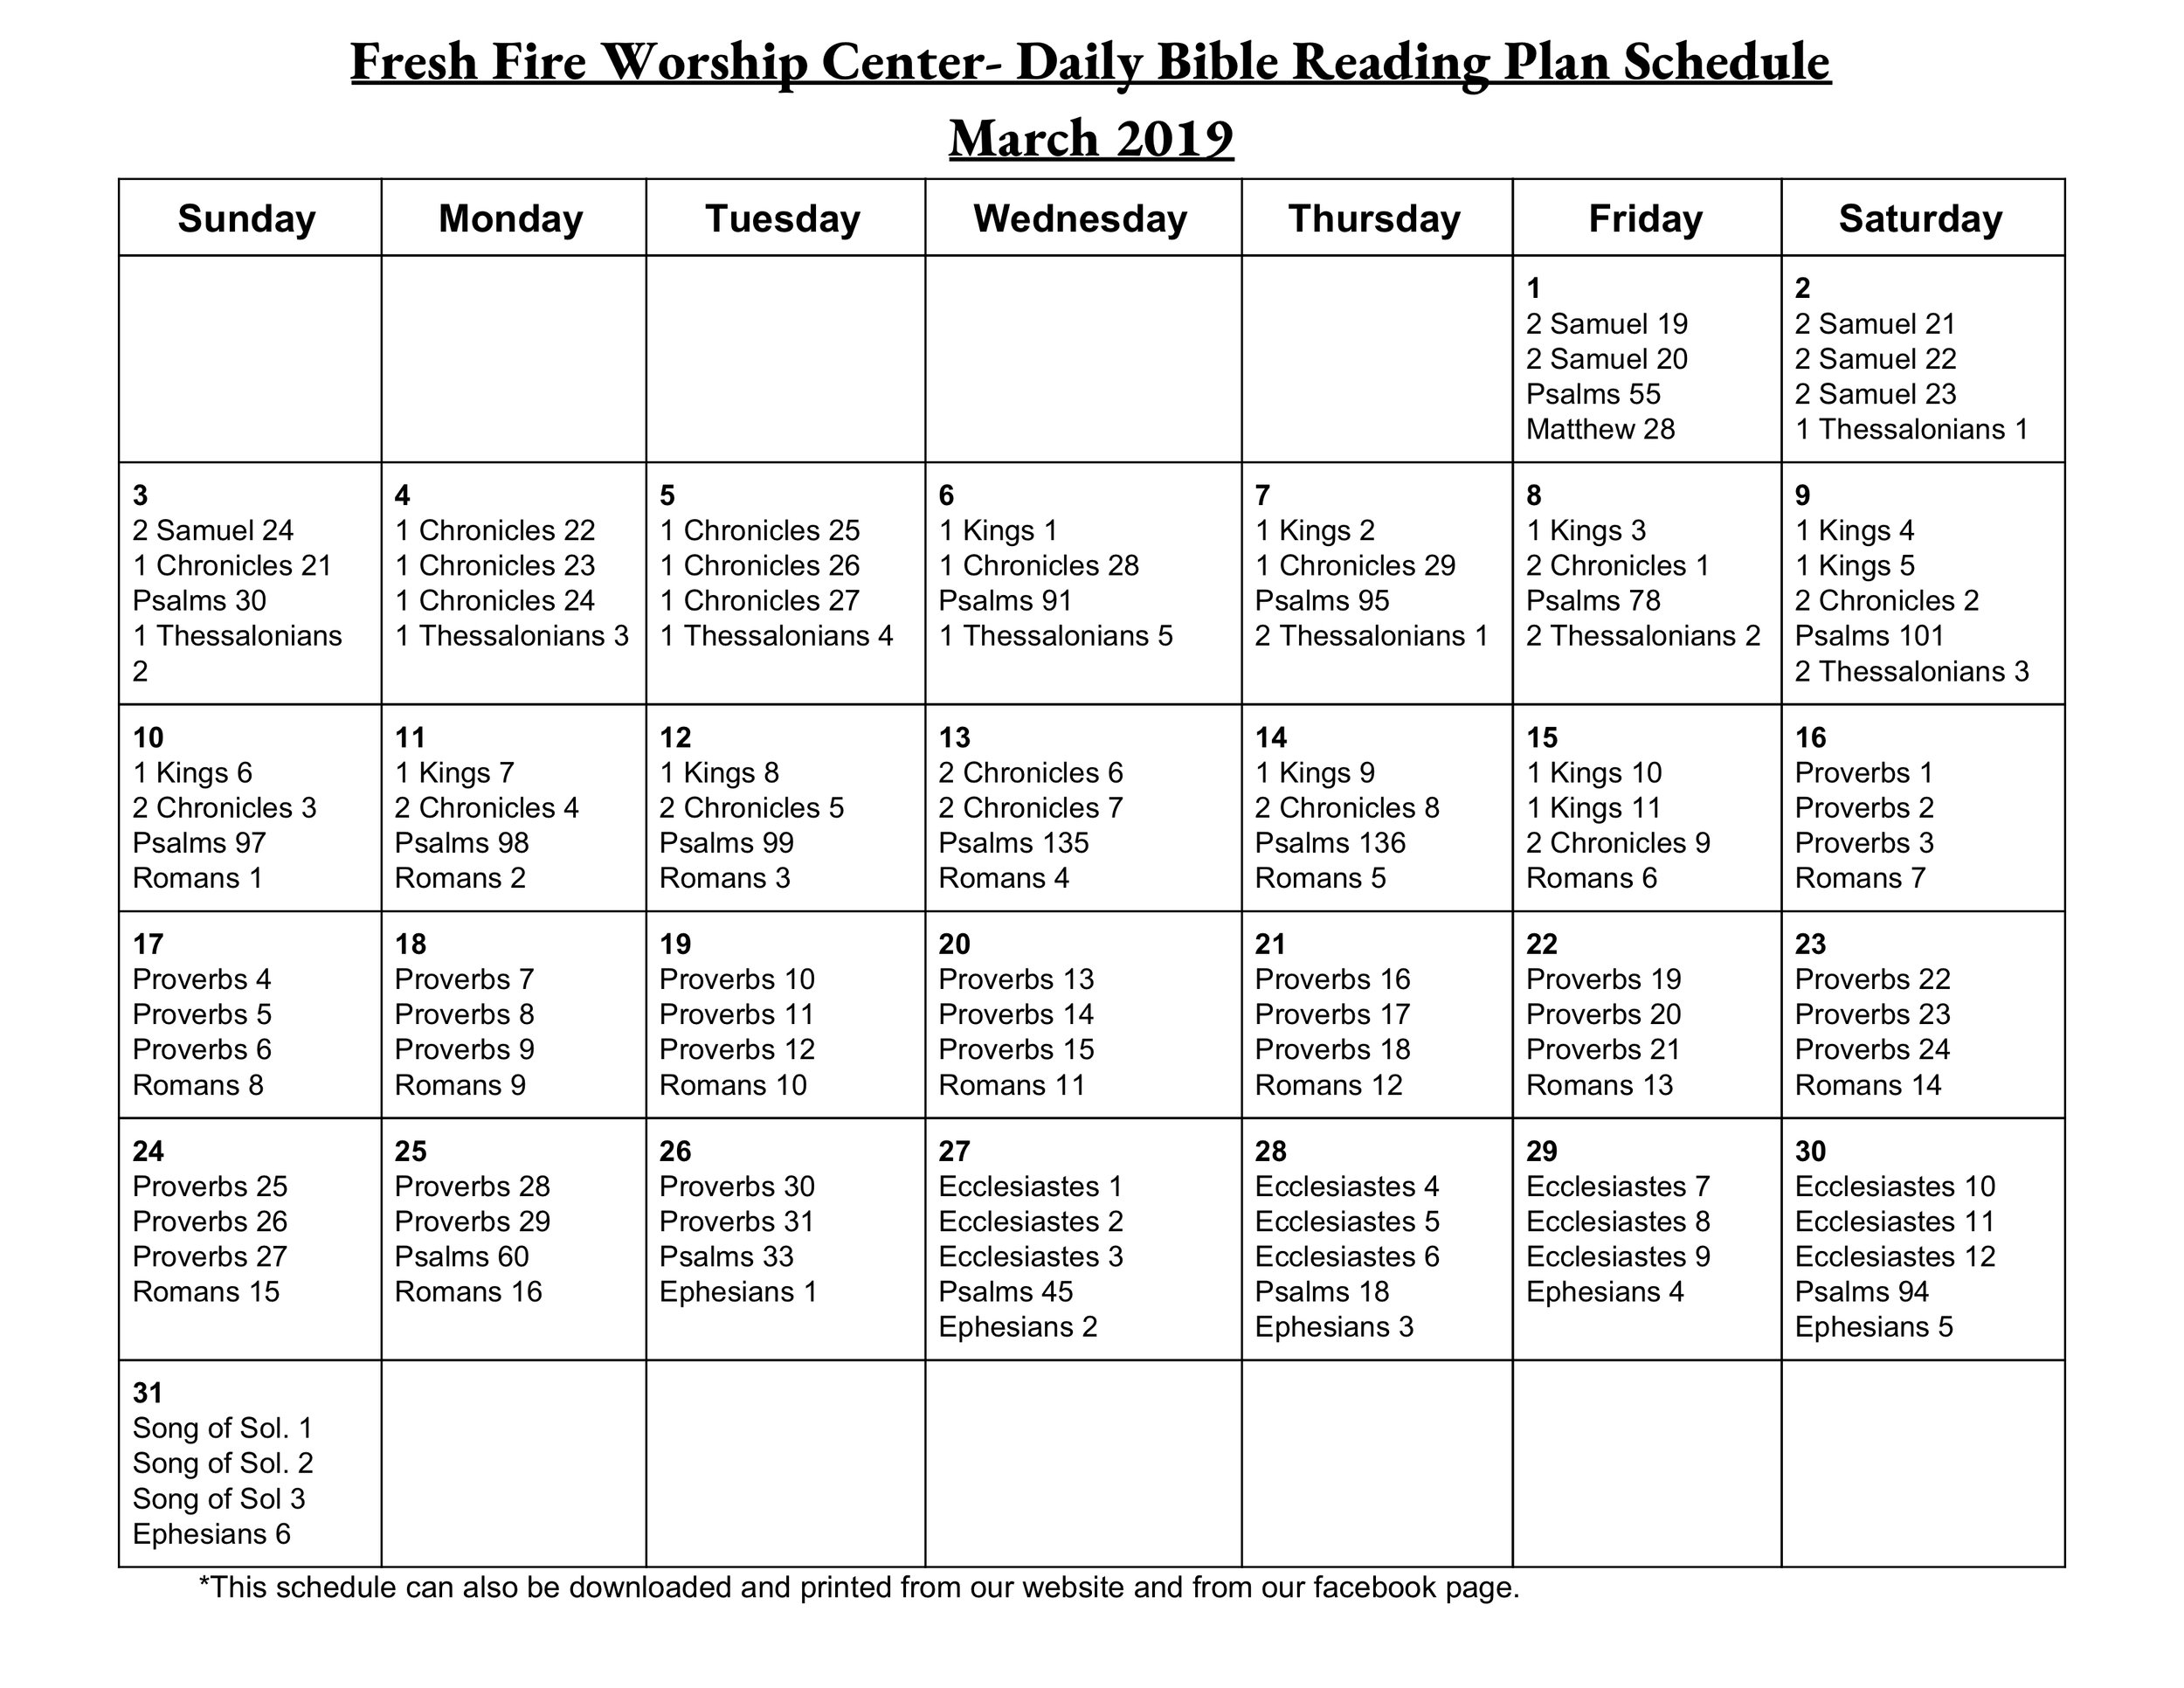 March 2019 Bible Reading Plan Schedule.jpg